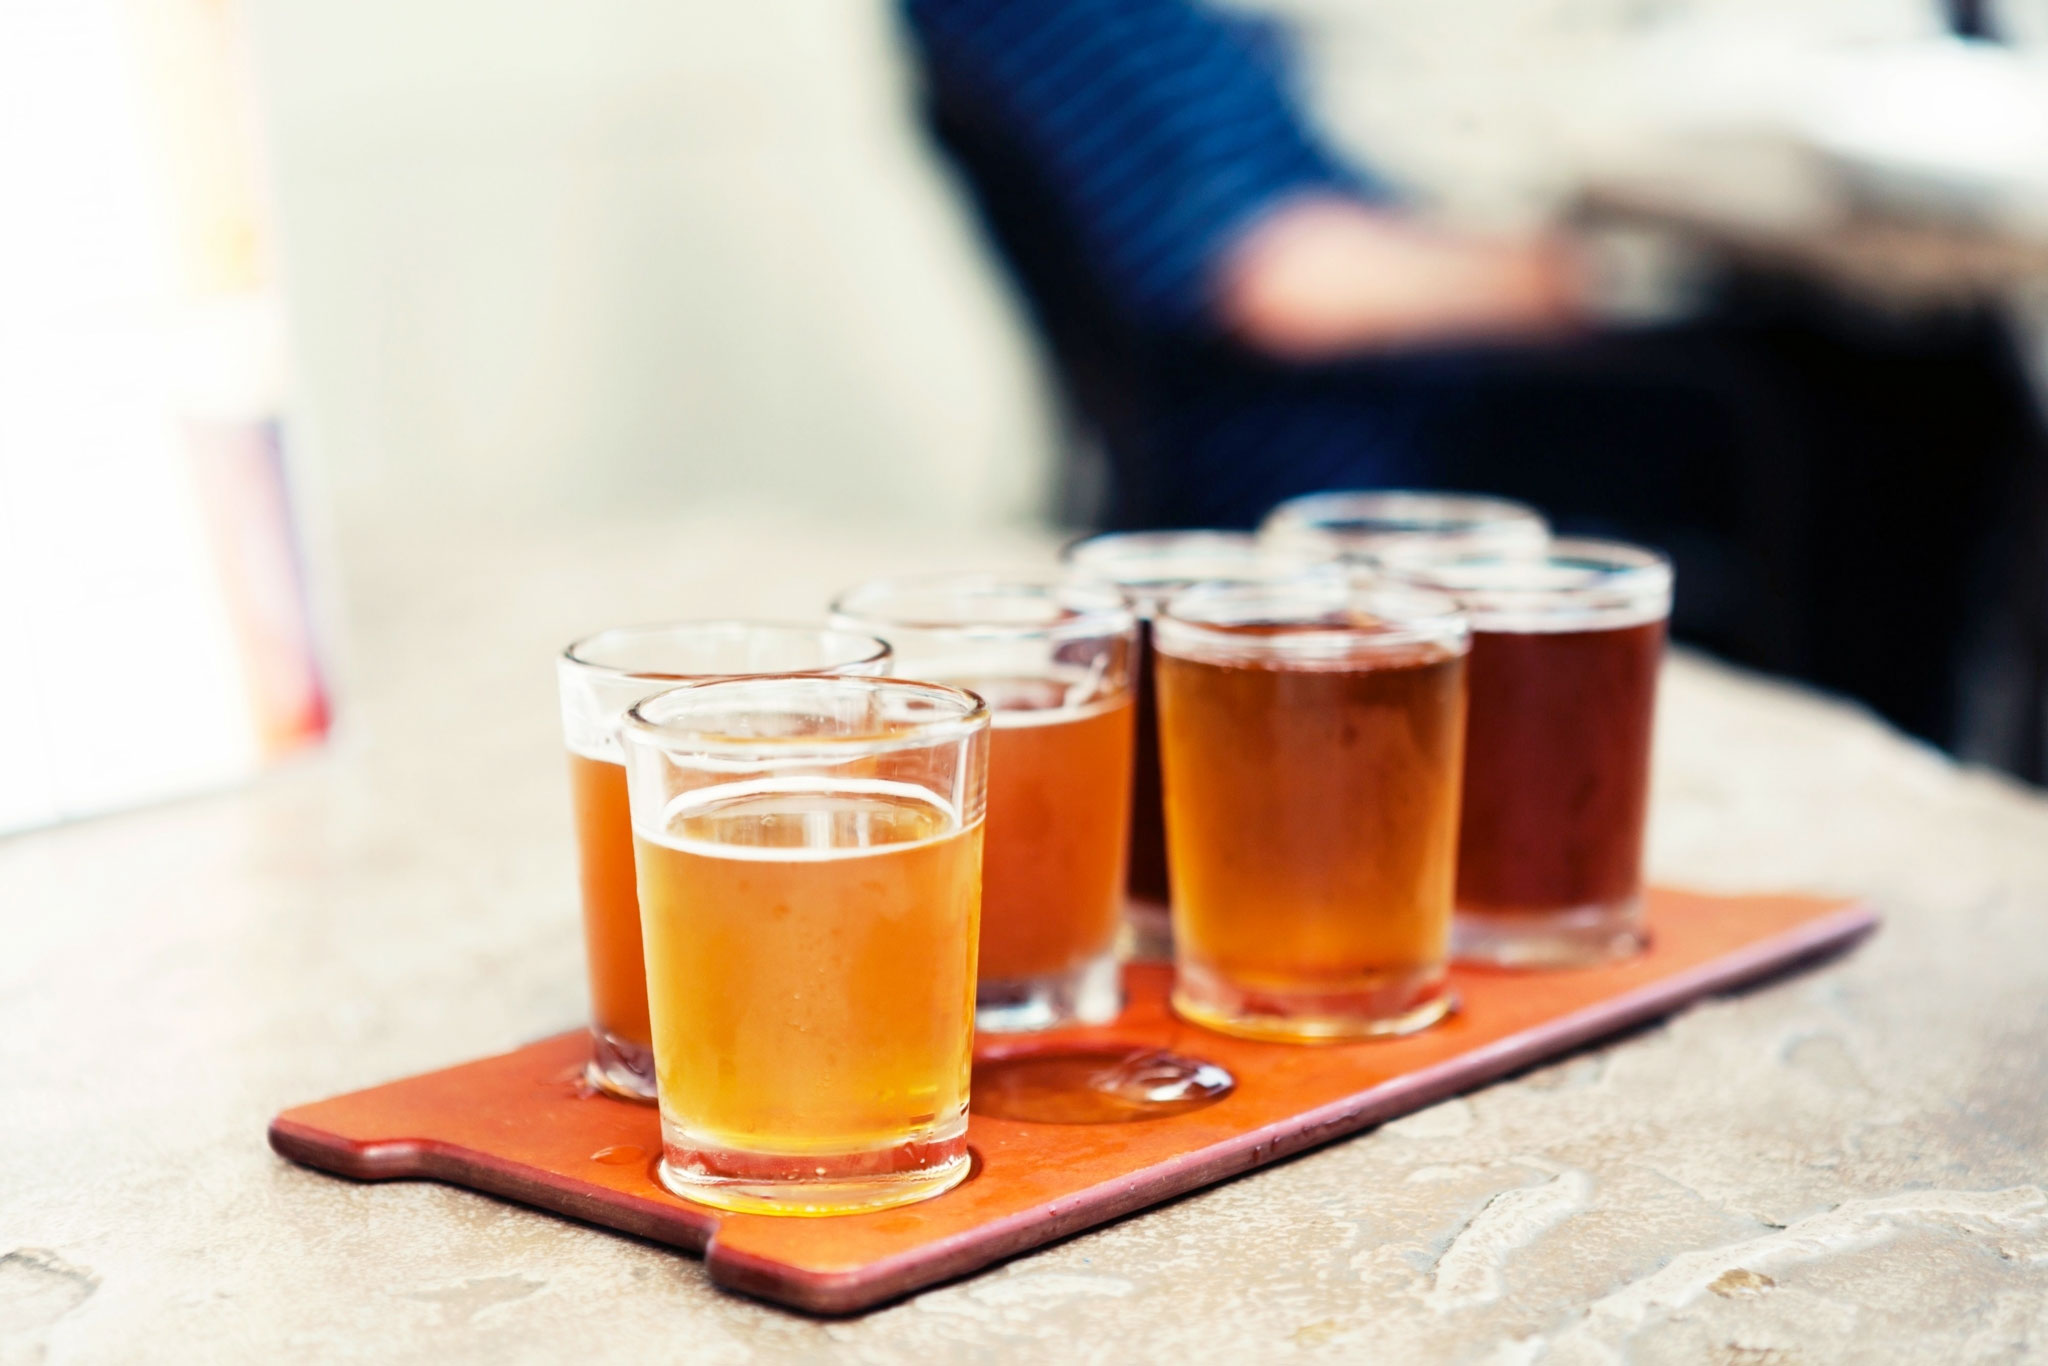 Sip on some craft beer\'s photo